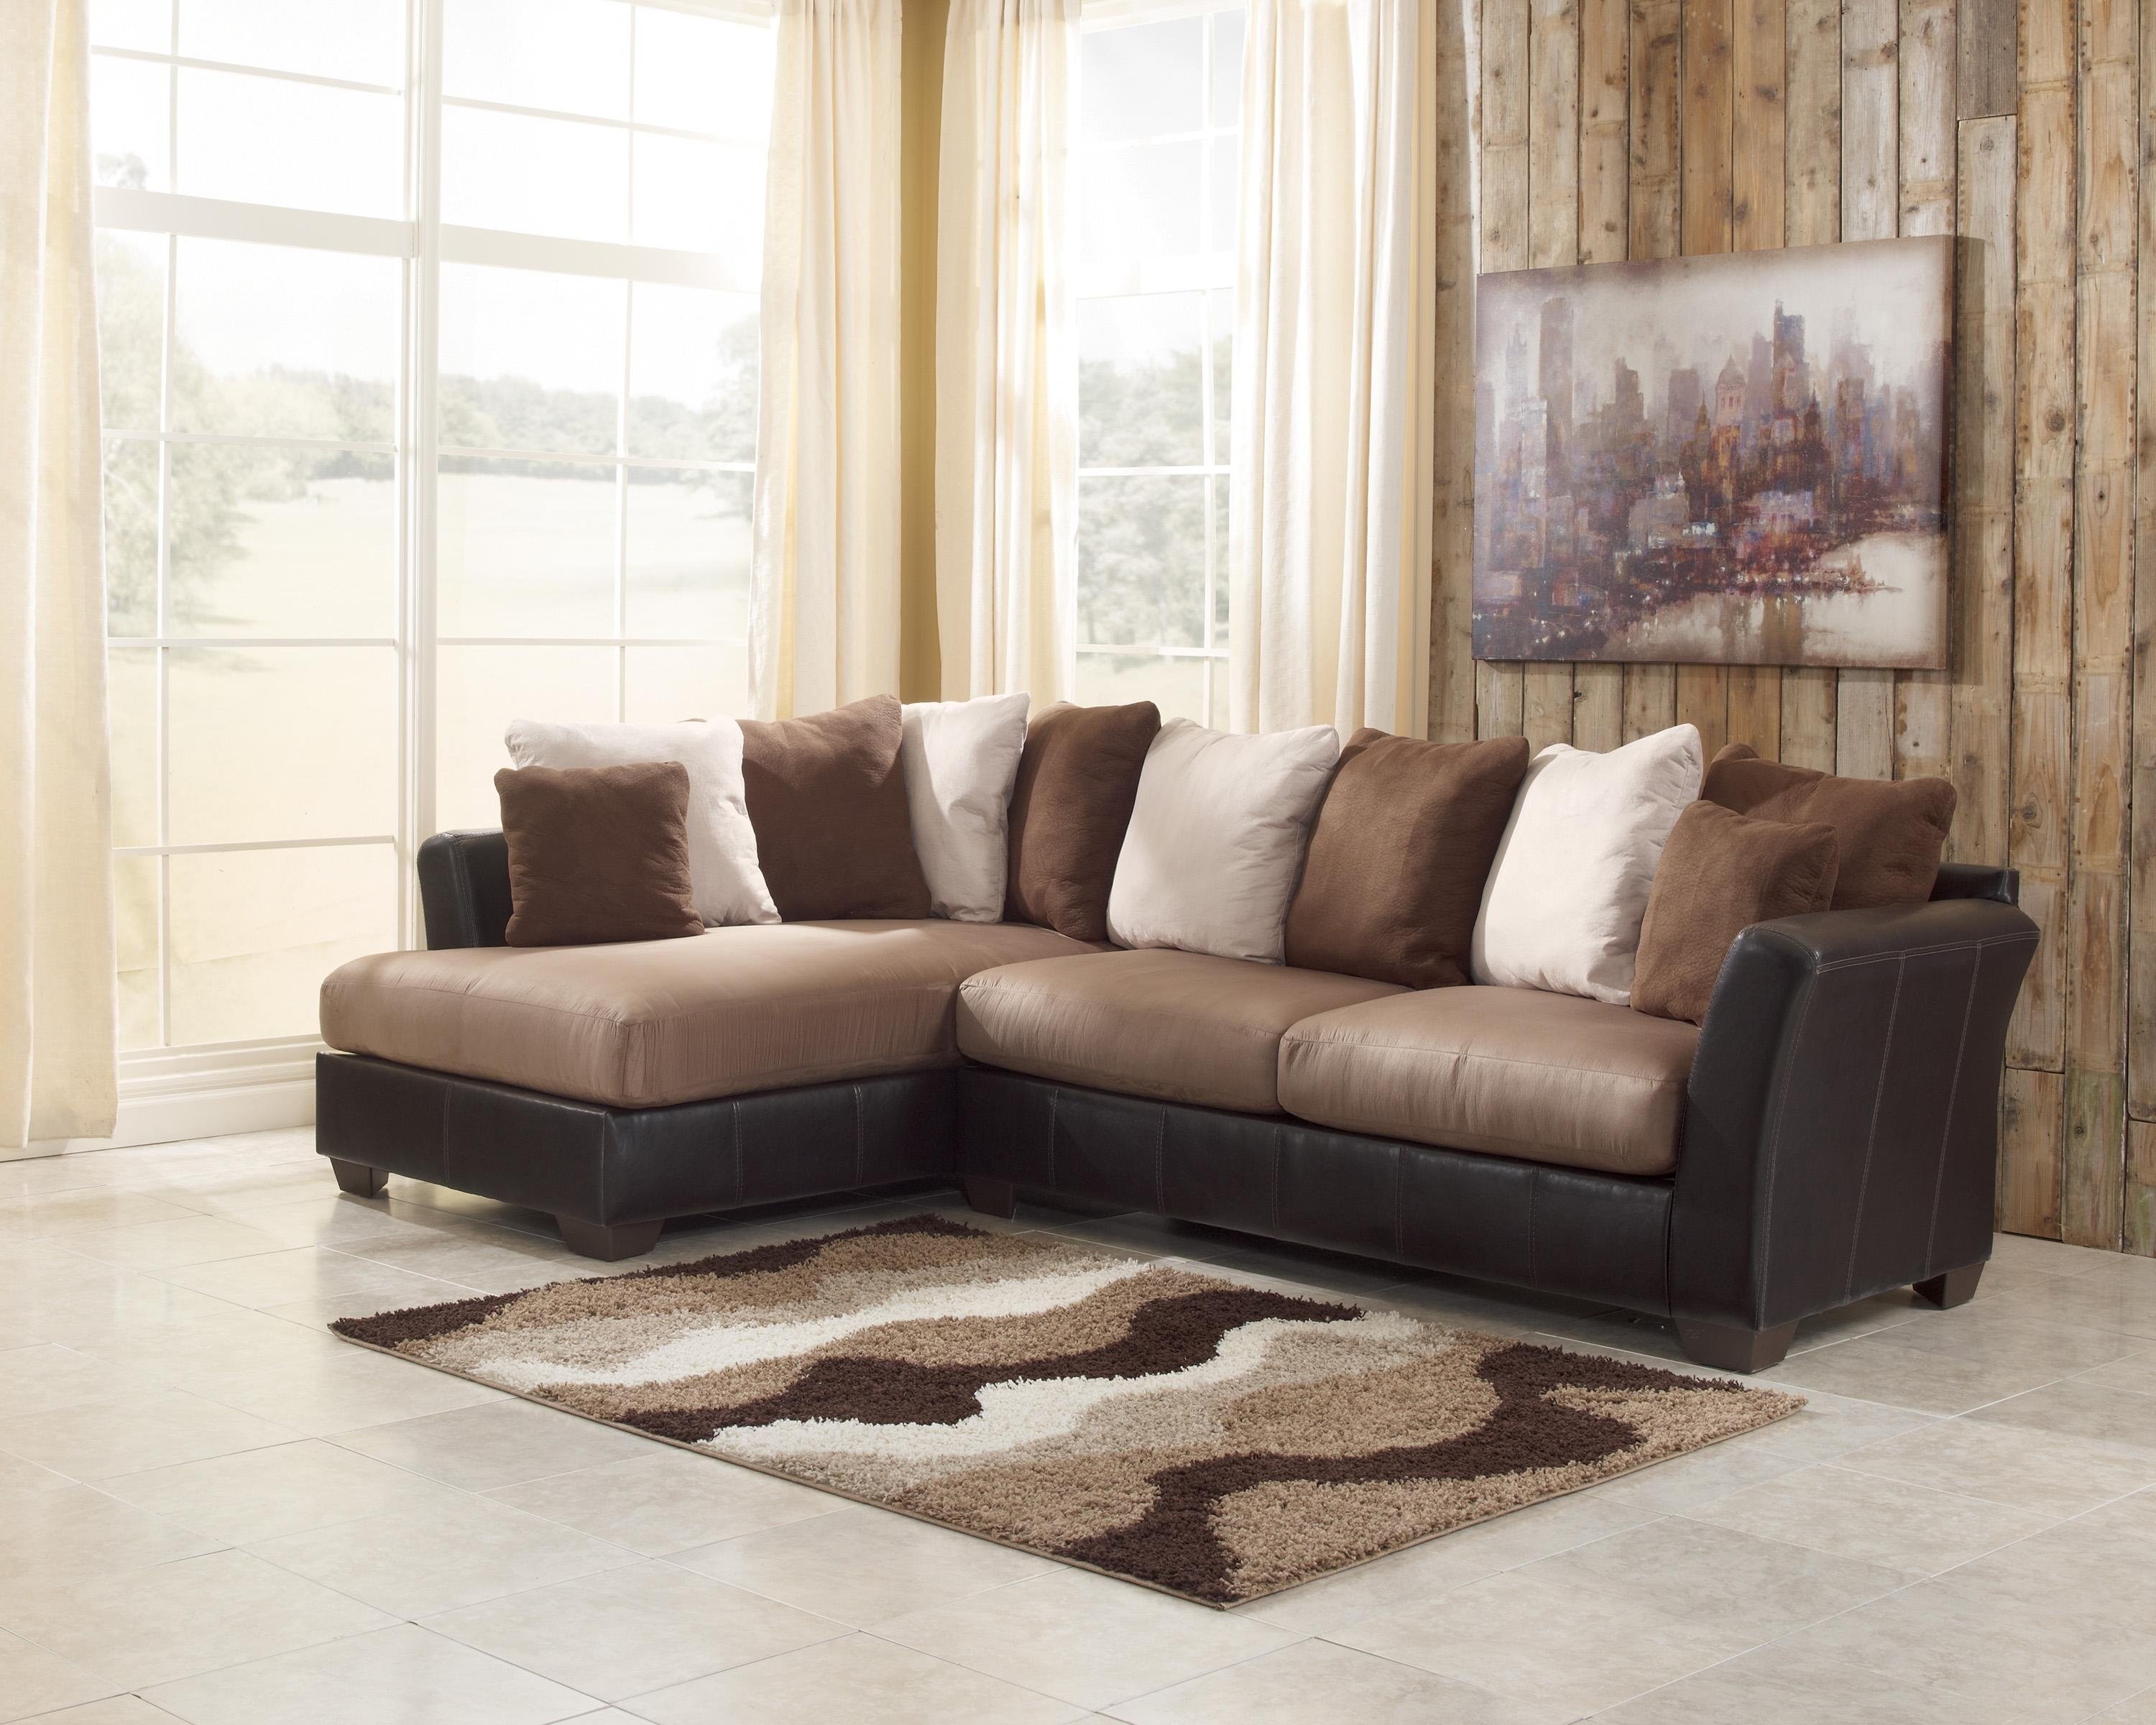 Magnificent 2 Piece Sectional Sofa For Your Inspirational 2 Piece throughout Kerri 2 Piece Sectionals With Laf Chaise (Image 25 of 30)